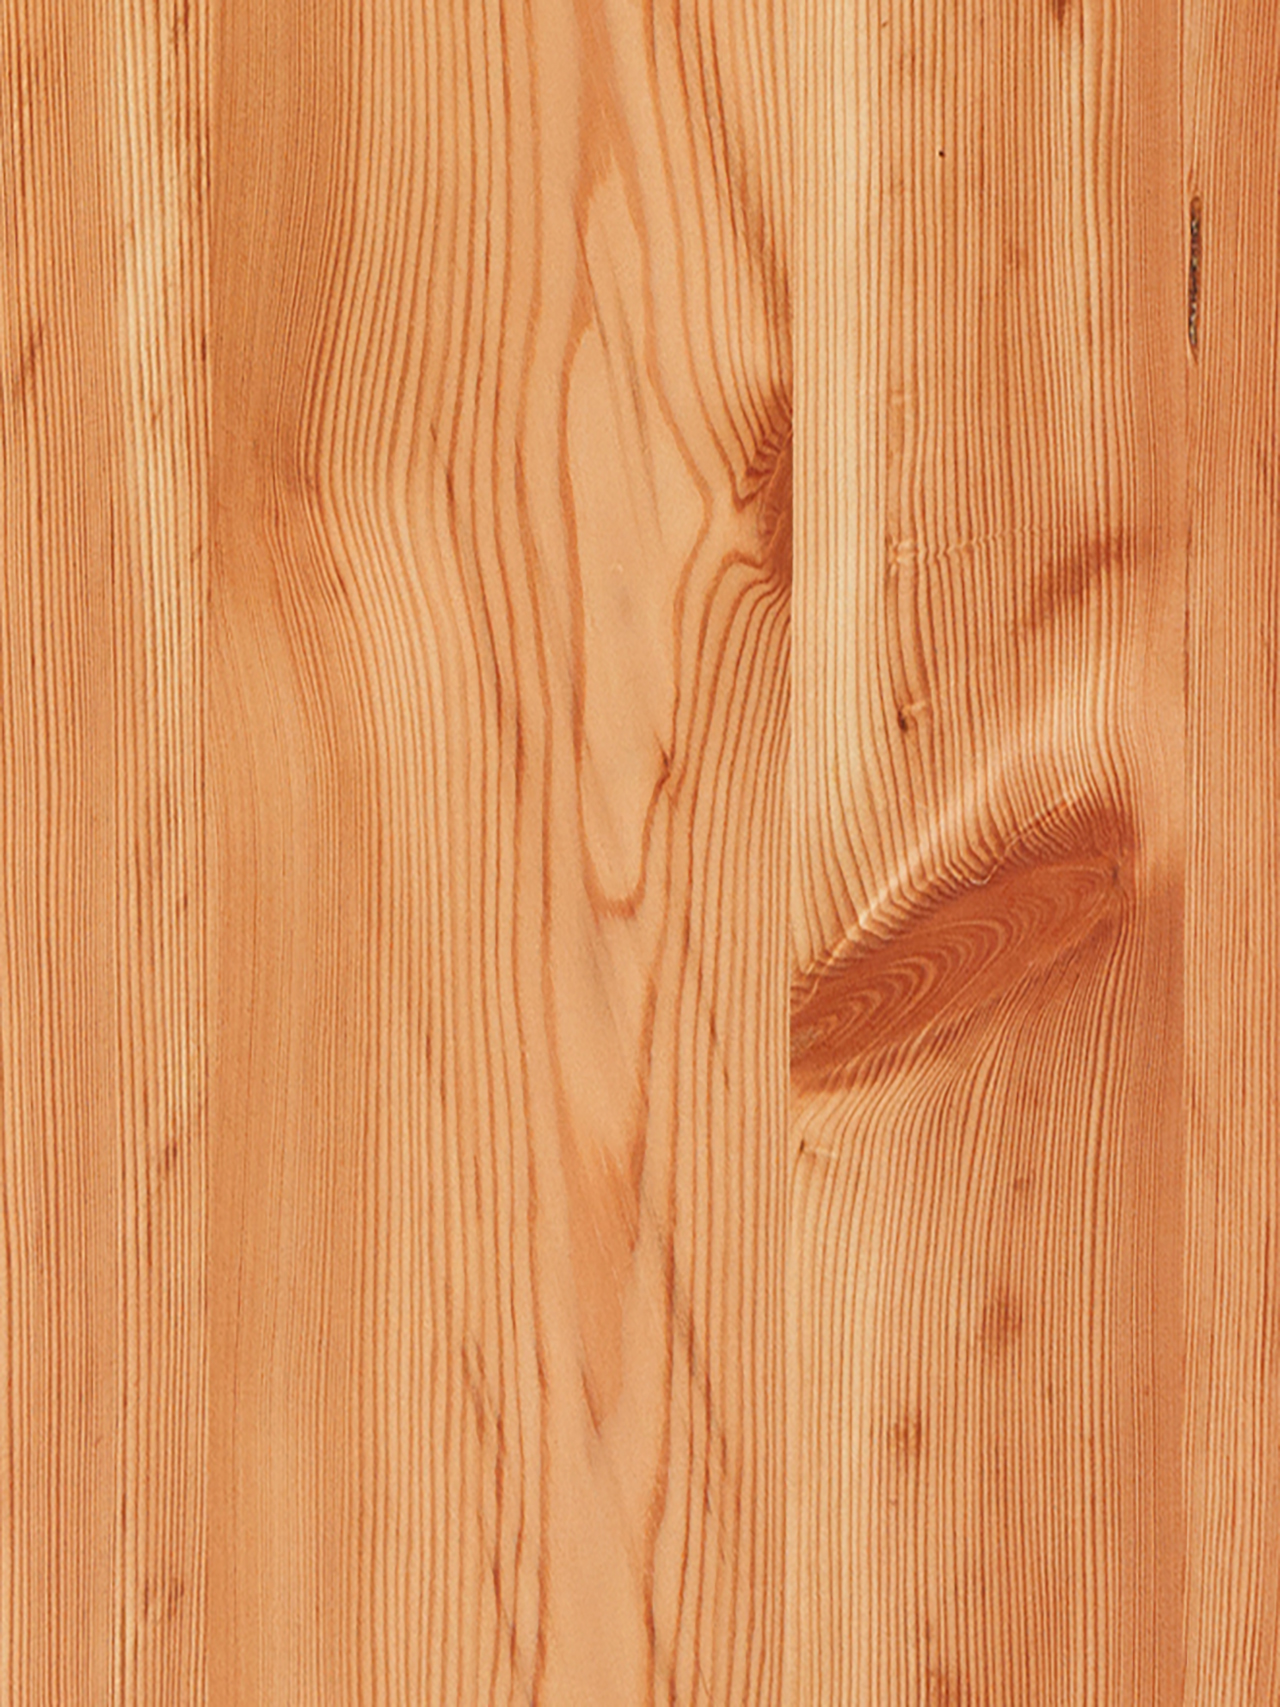 Larch Rustic